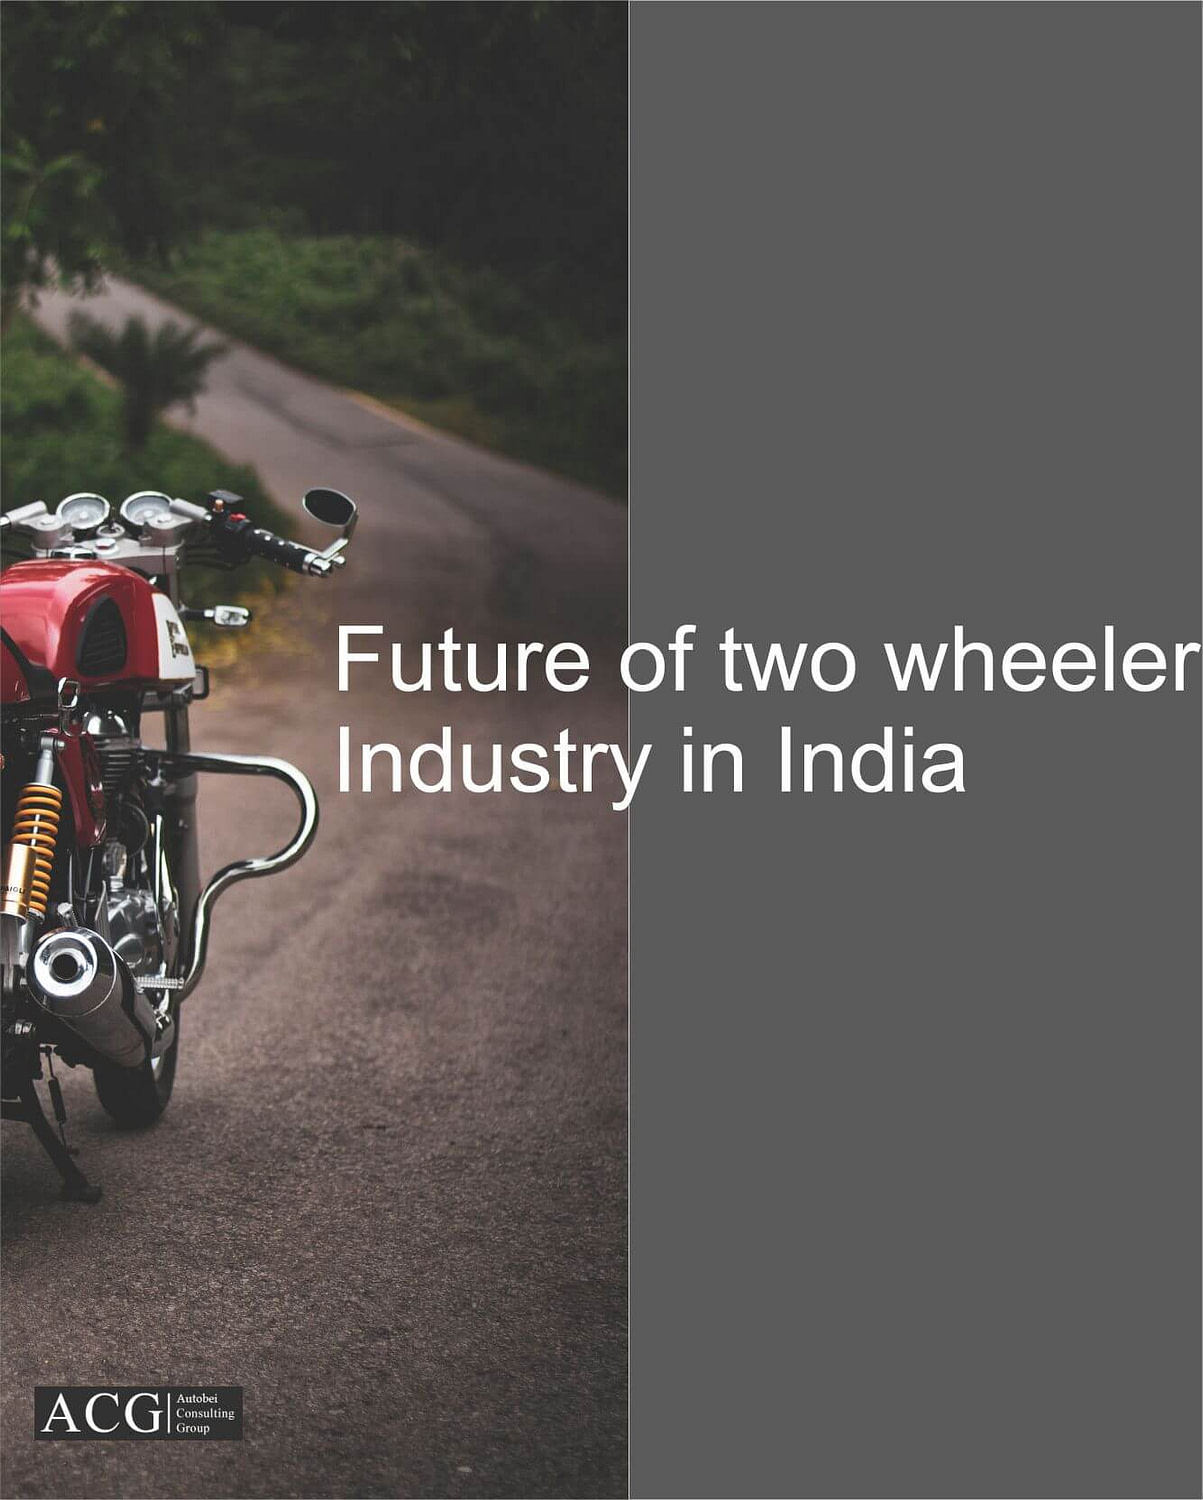 Future of two wheeler Industry in India